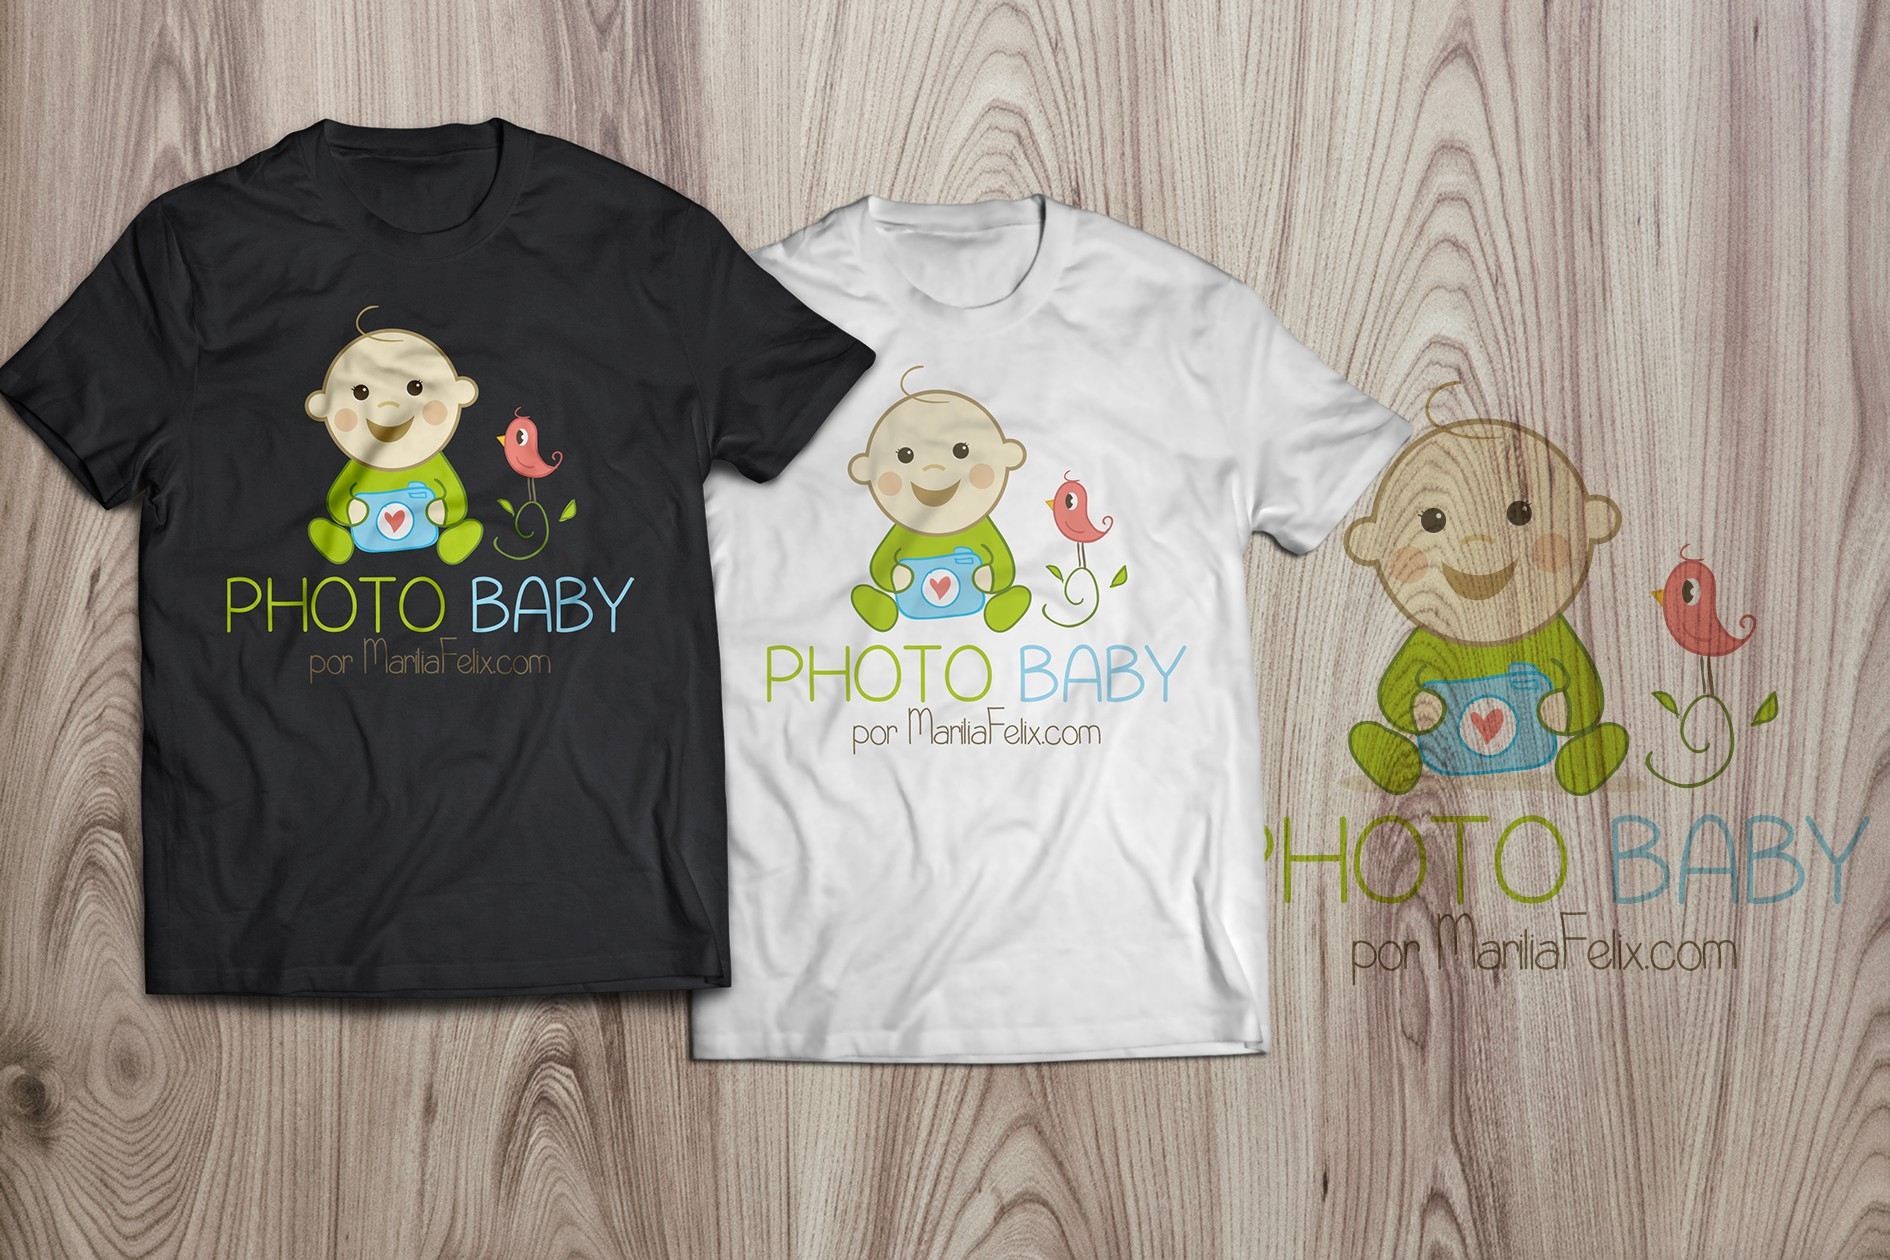 Vintage Clean Logo Is Needed For A Baby Photo Studio